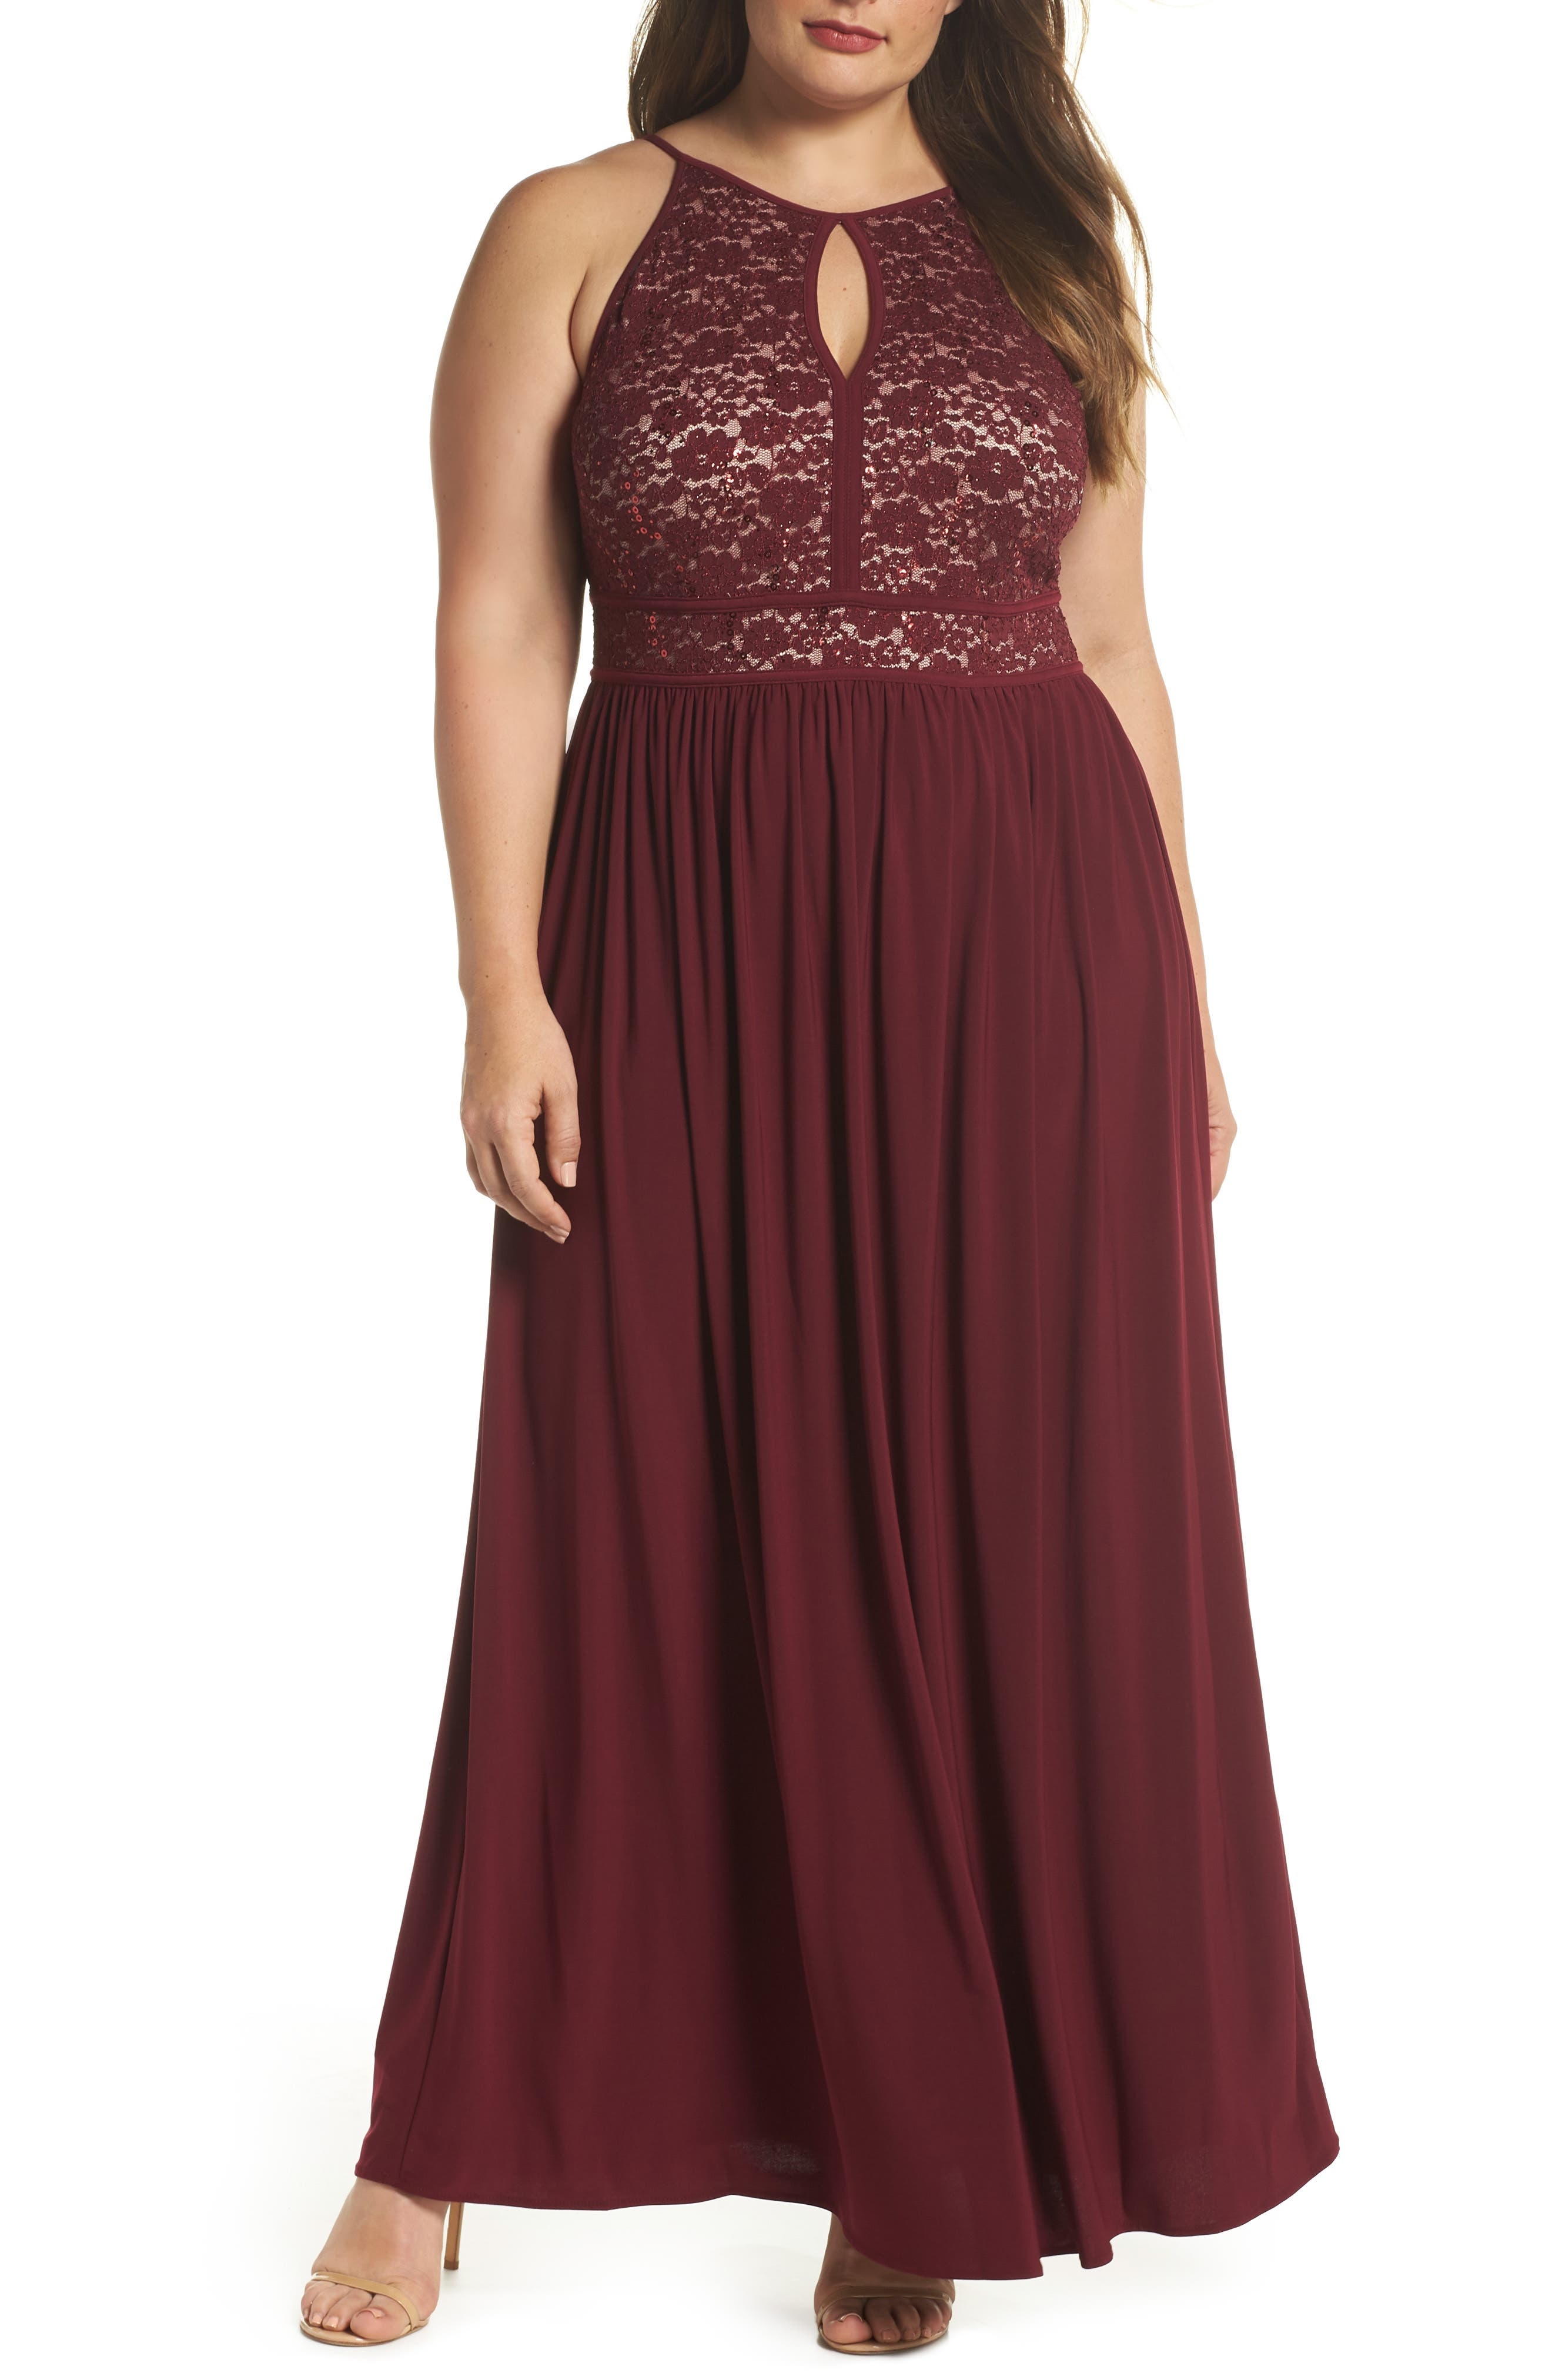 MORGAN & CO., Lace Pleated Gown, Main thumbnail 1, color, MERLOT